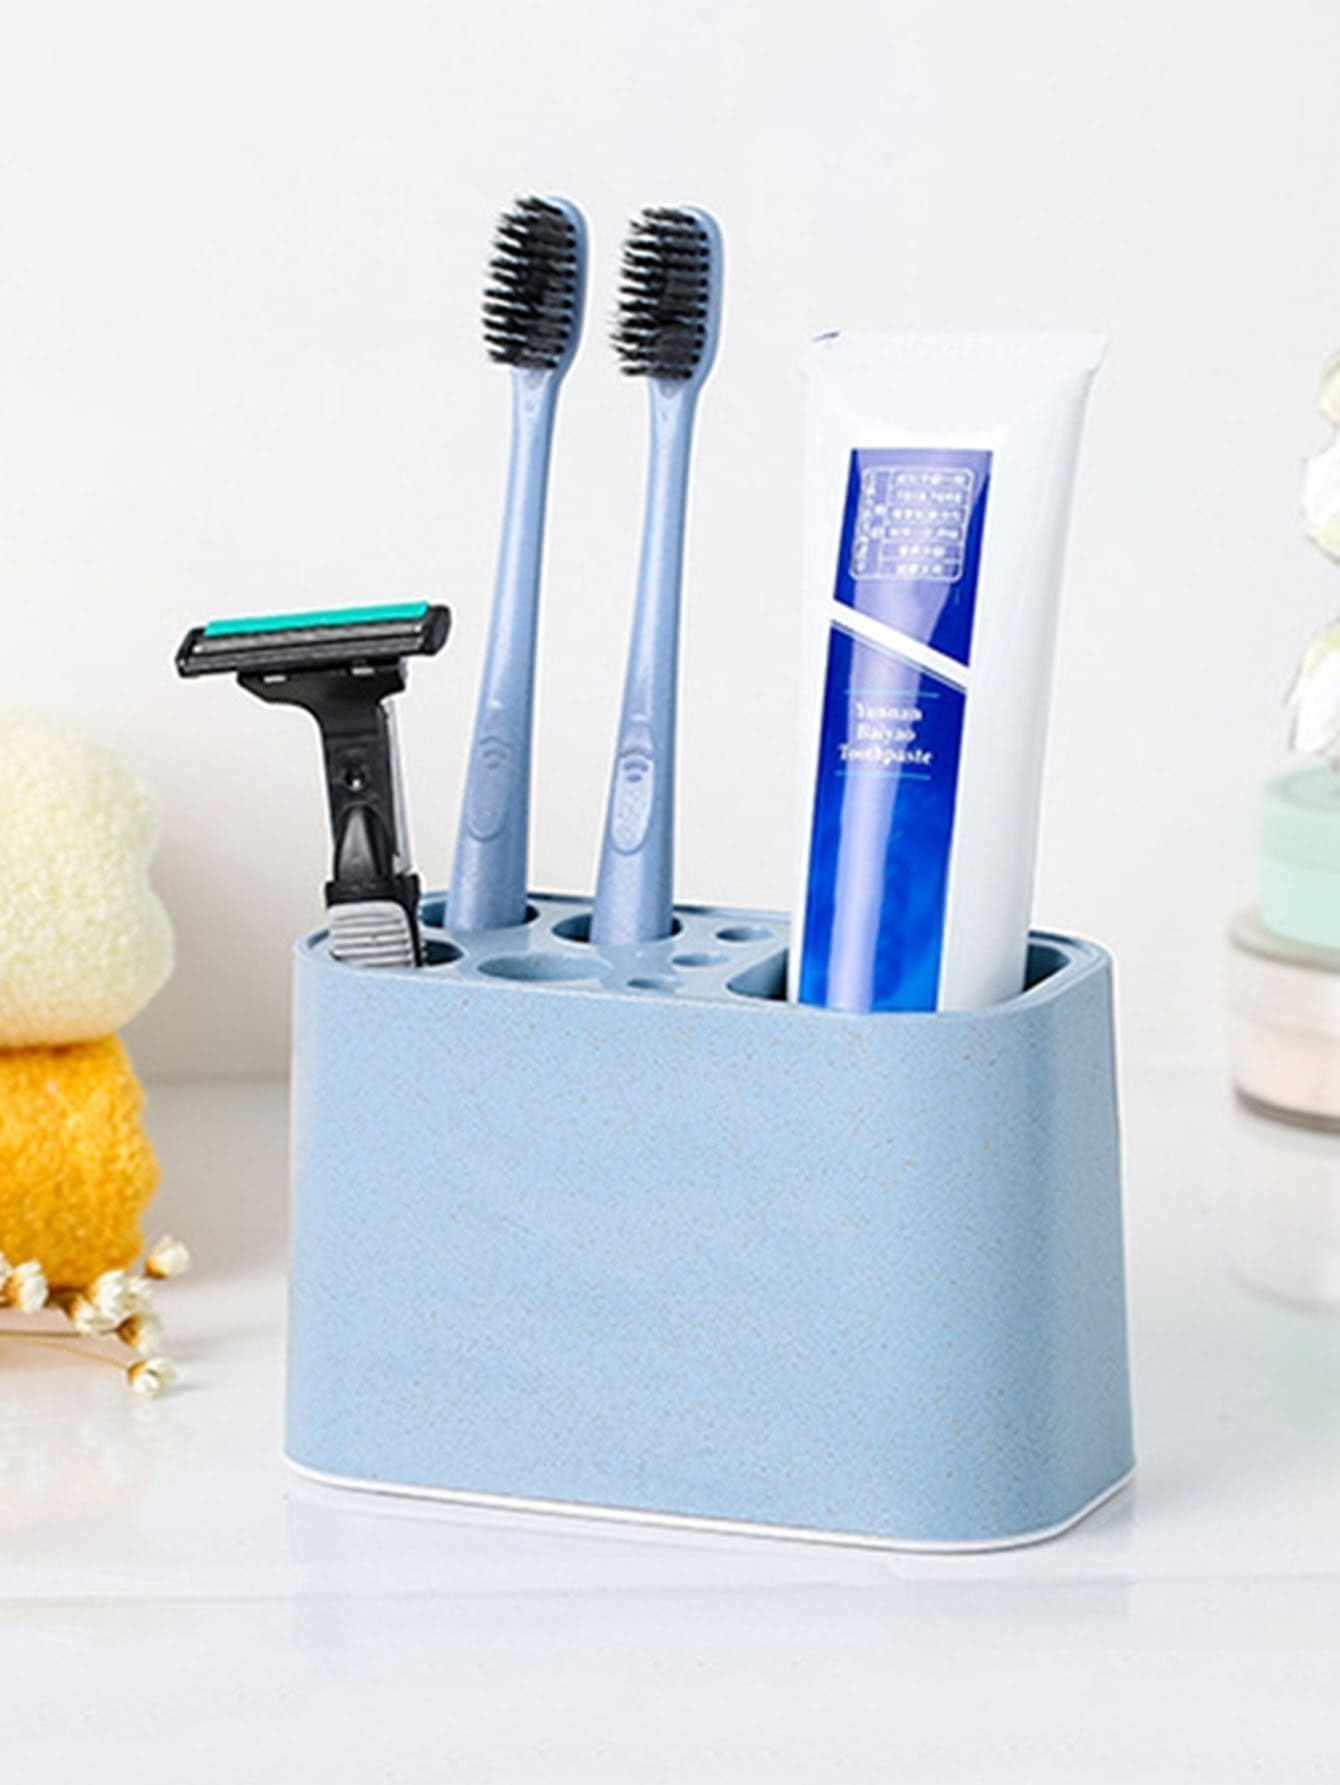 Tooth Brush Organizer Rack durable 26mm 7 tooth splin gearhead gearbox mayitr trimmer strimmer brush cutter lawnmower parts